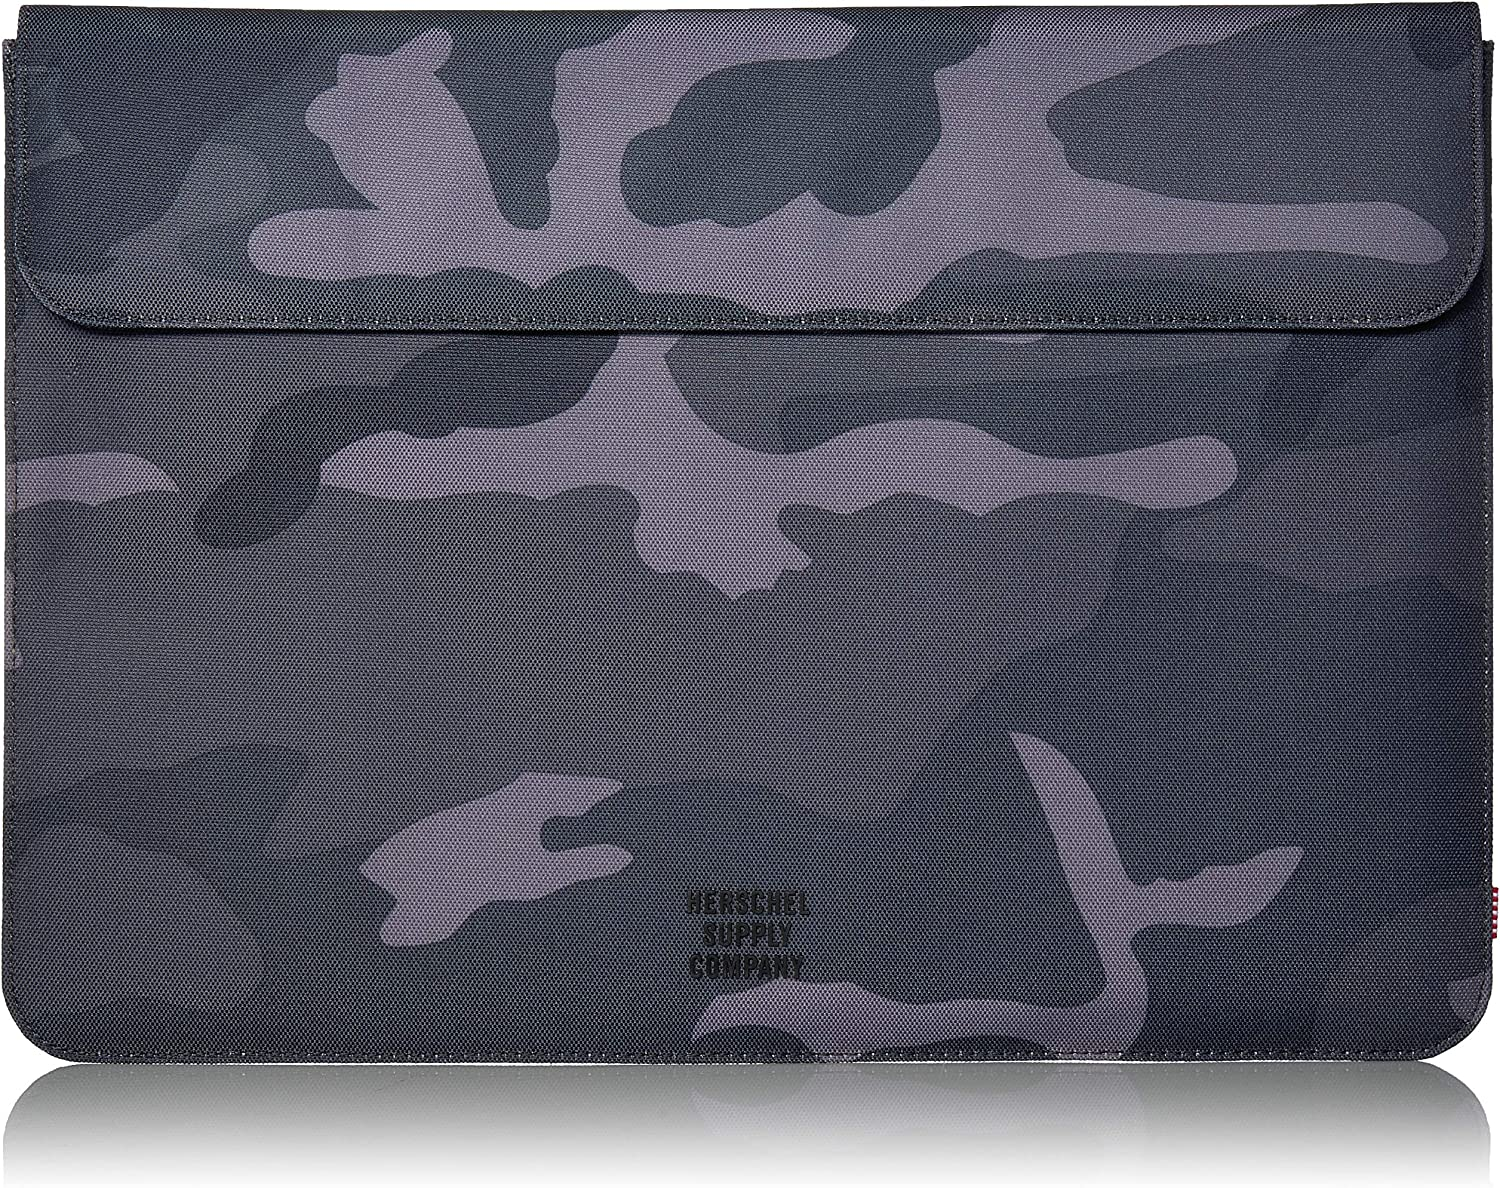 Herschel Spokane Sleeve for MacBook/iPad, Night Camo, 15-Inch